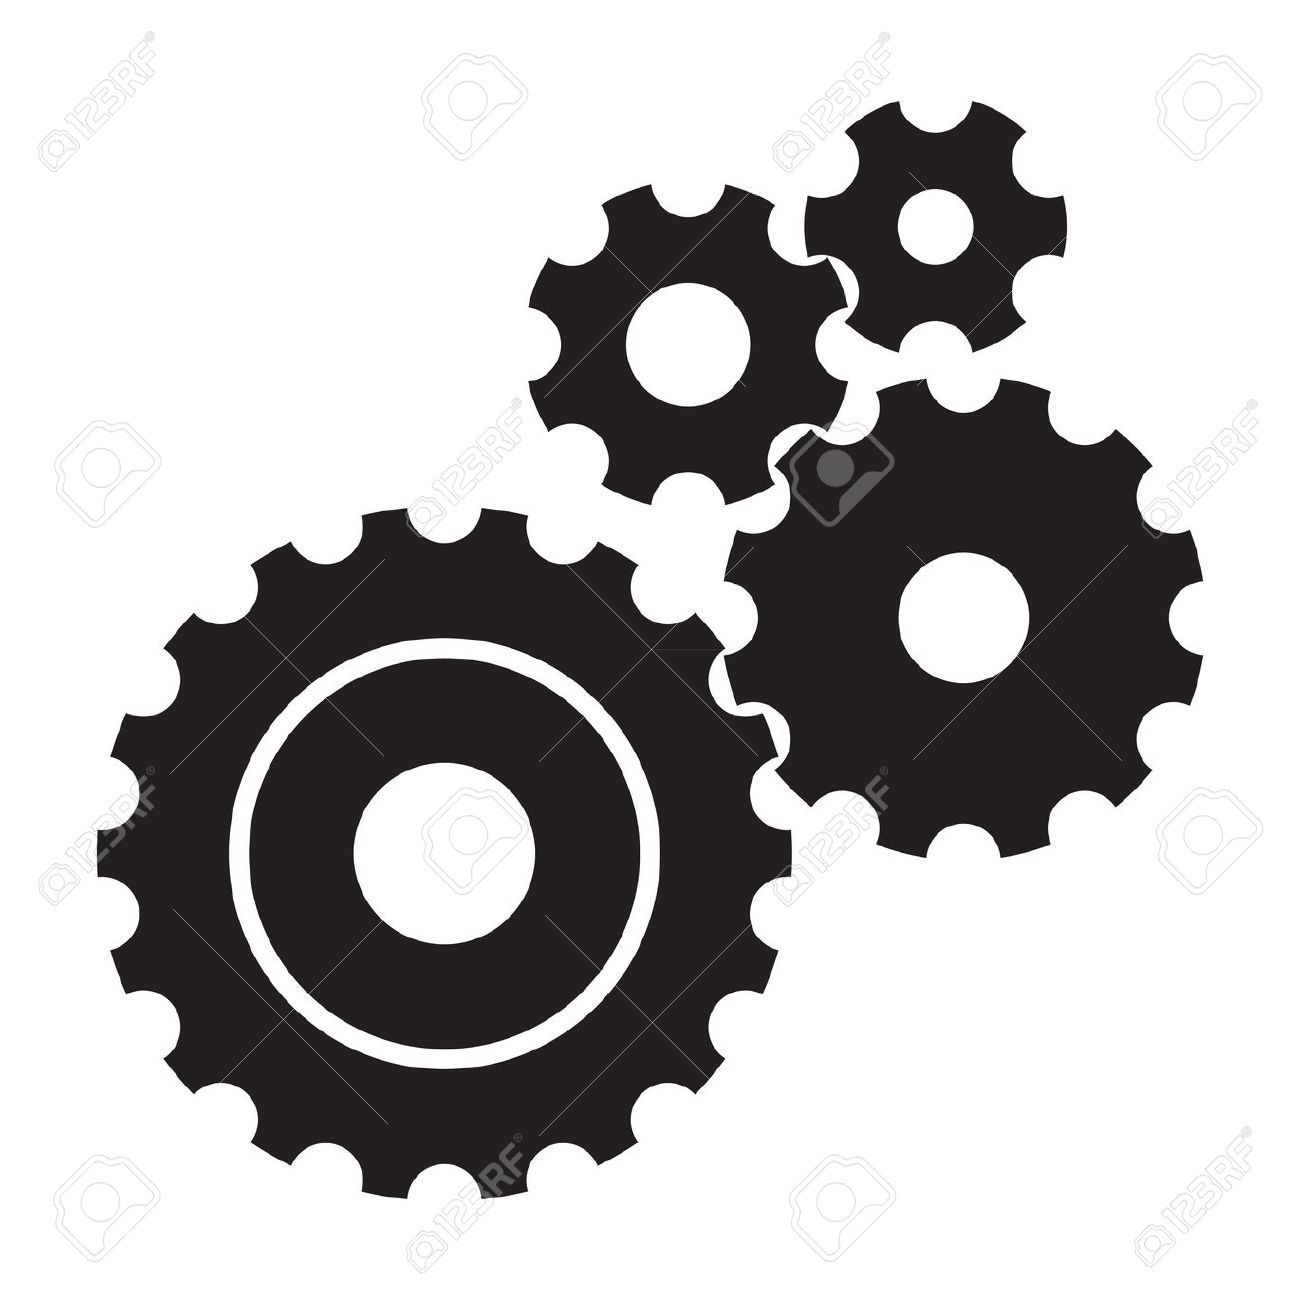 Mechanical engineering clipart 7 » Clipart Portal.